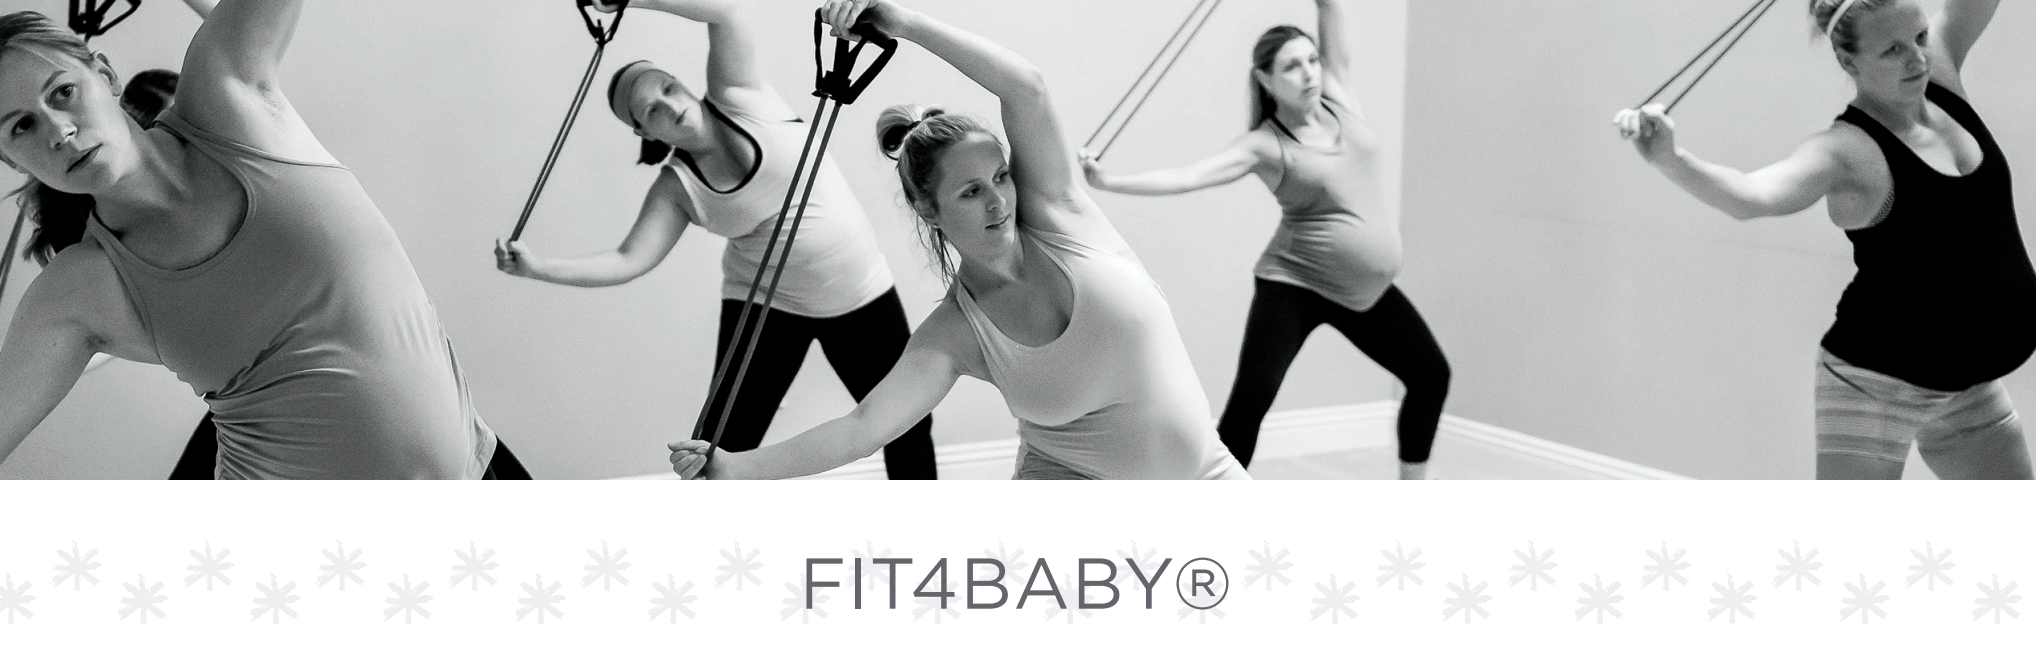 Fit4baby Header.png